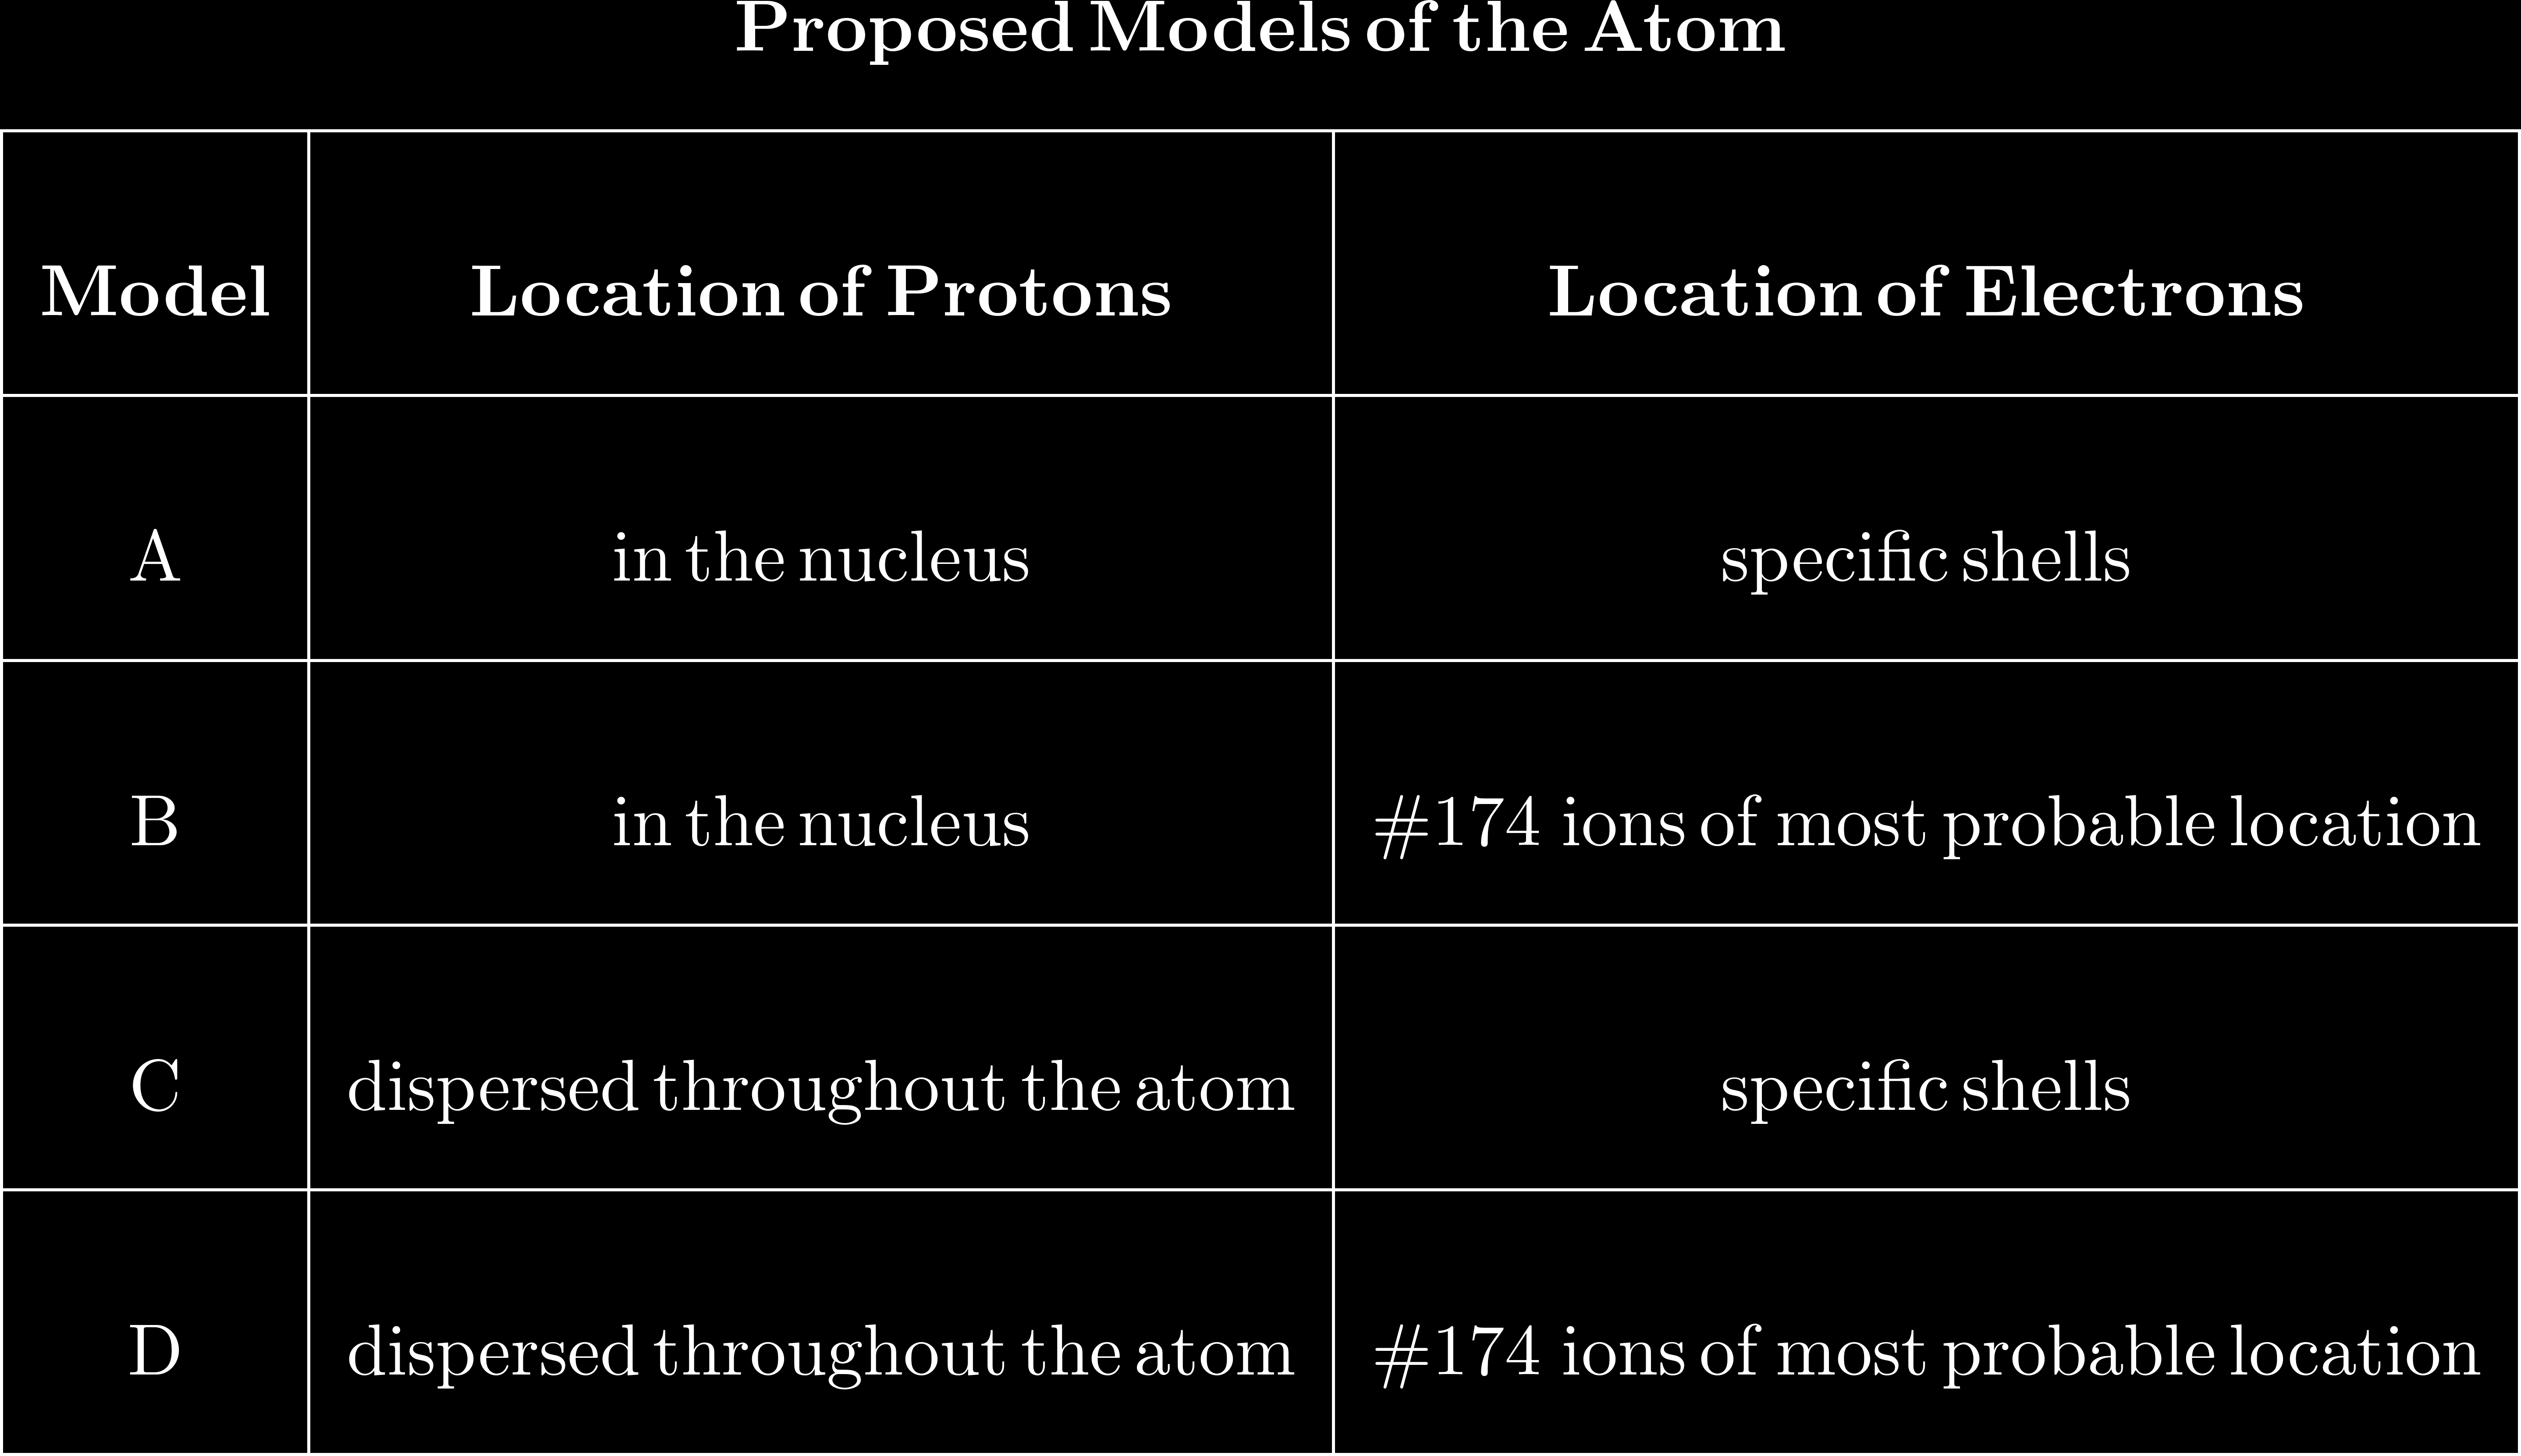 18. Given the table below that shows student's examples of proposed models of the atom: Which model correctly describes the locations of protons and electrons in the wave-mechanical model of the atom?